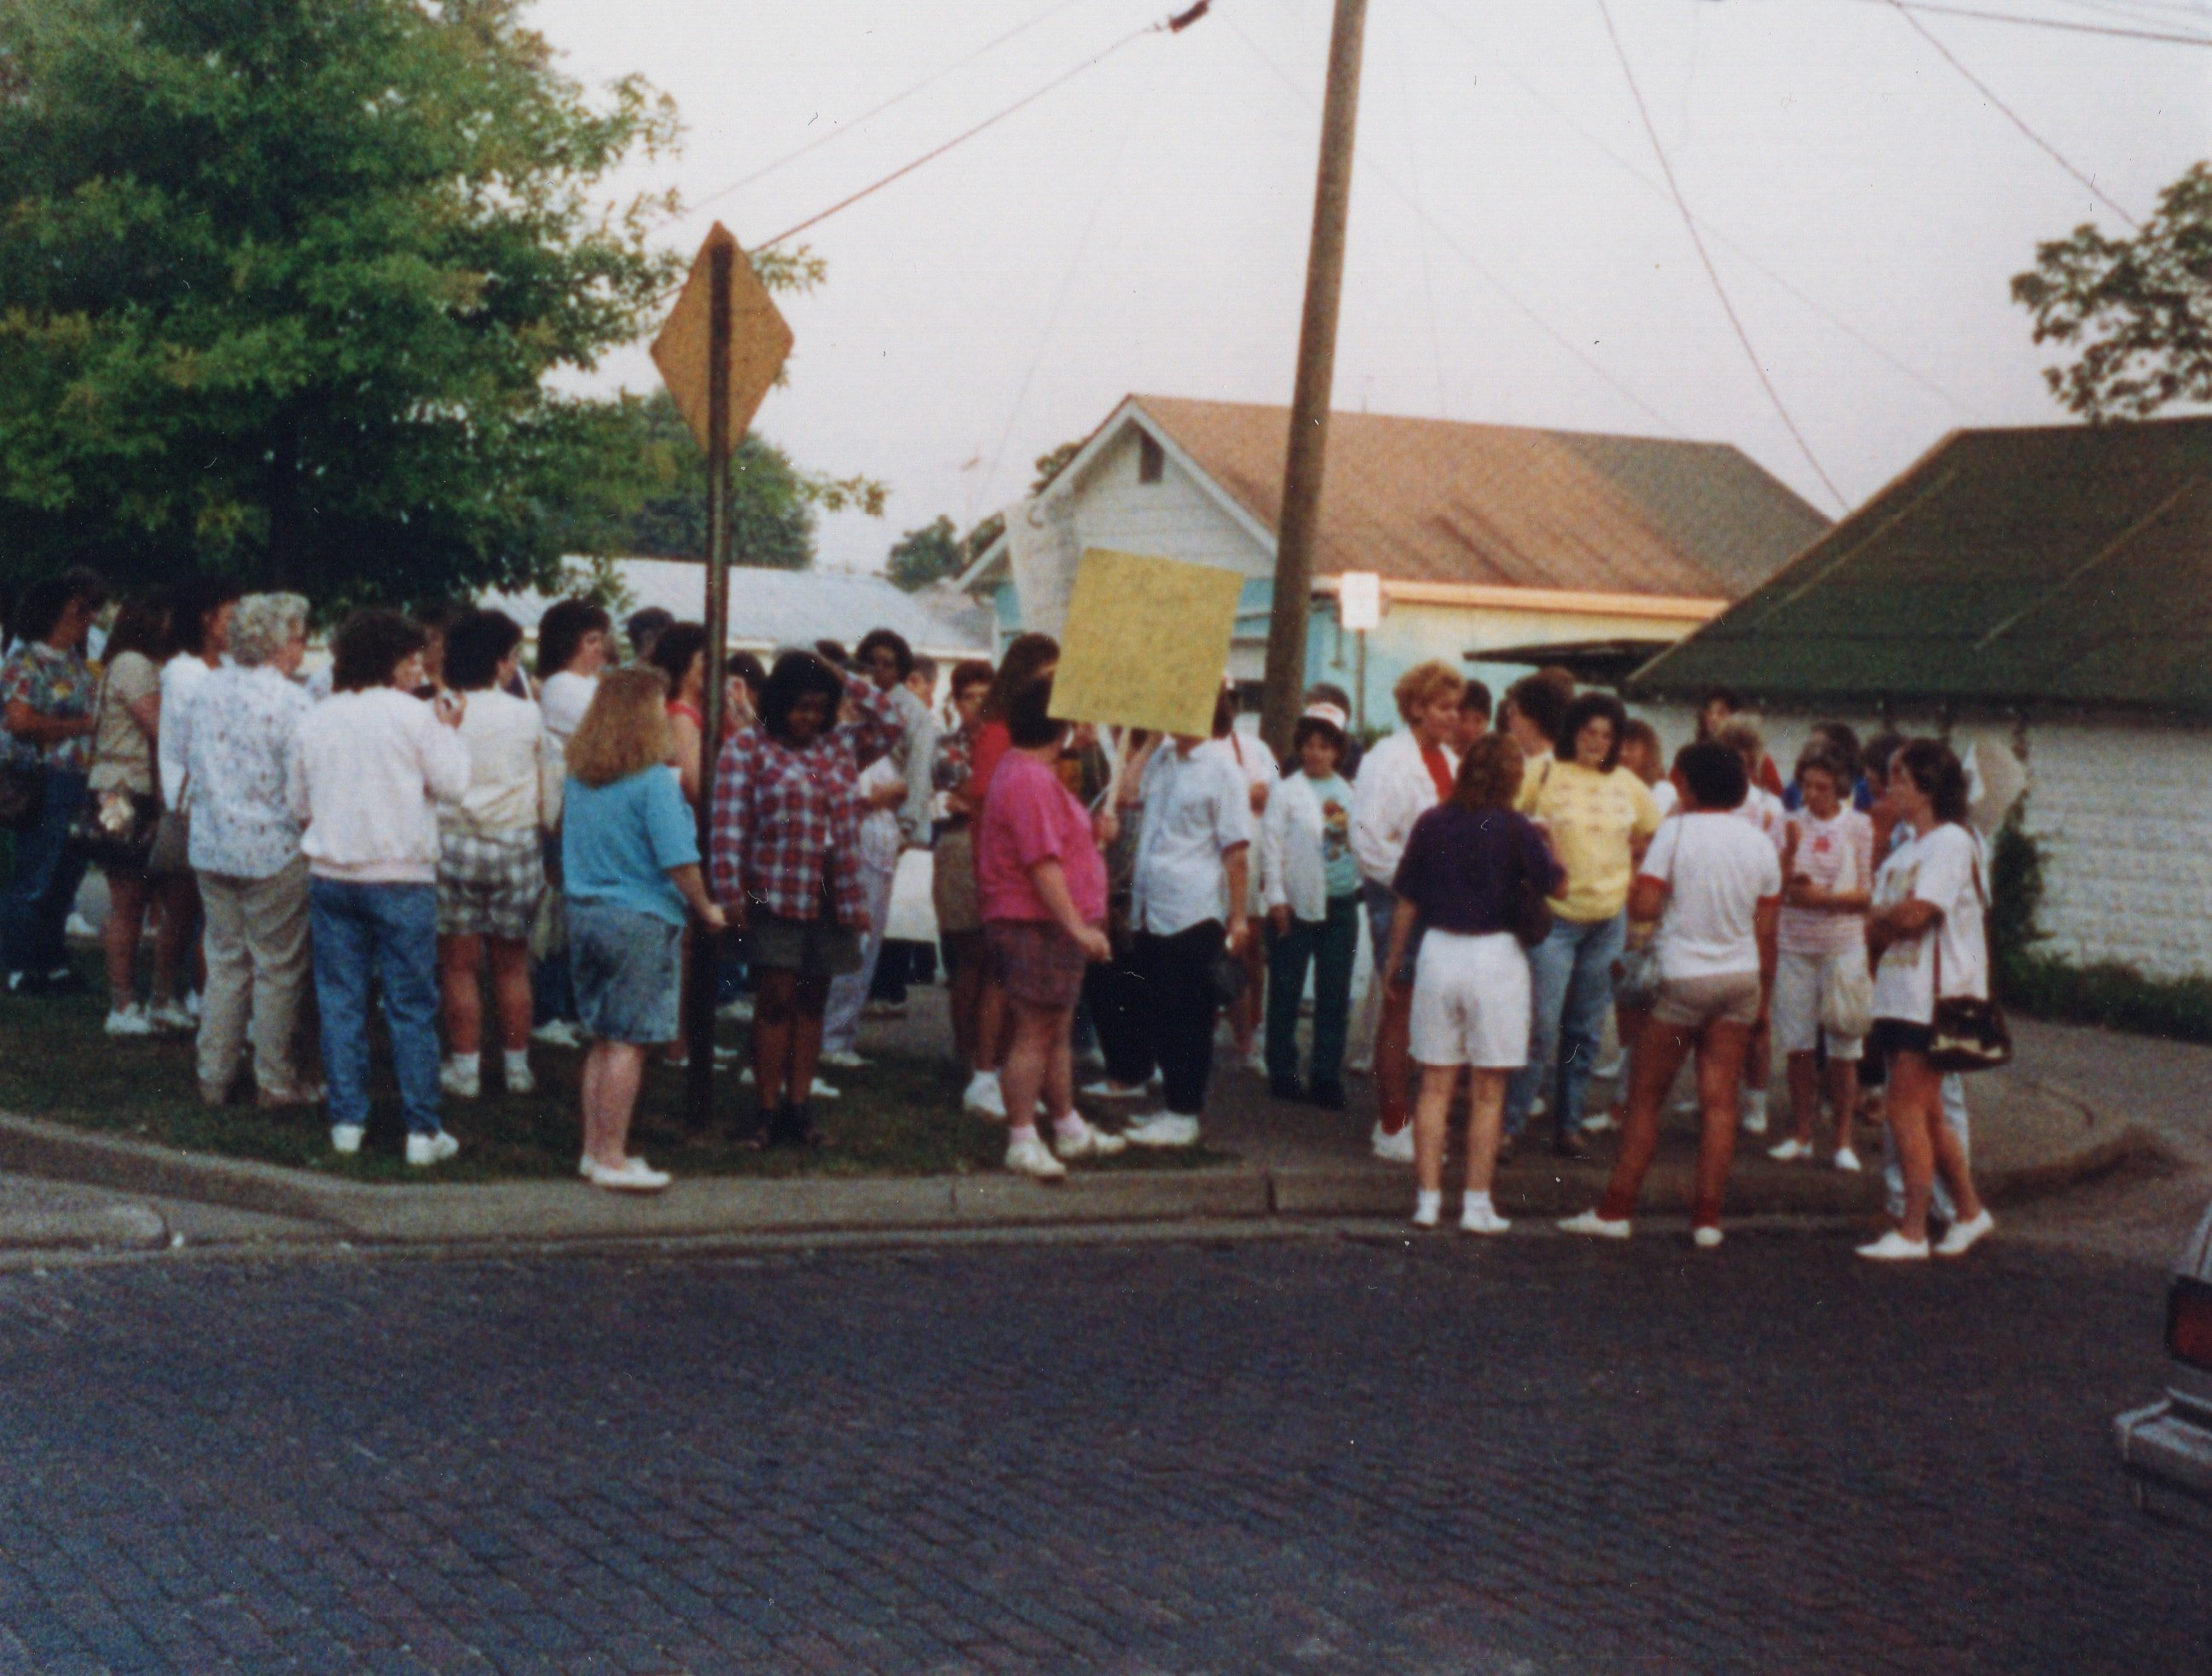 Corbin Ltd. Employees on strike protesting managers' desire that every employee work multiple sewing jobs at the Factory, in park across from Vernon St. Factory, Huntington, WV, 1991